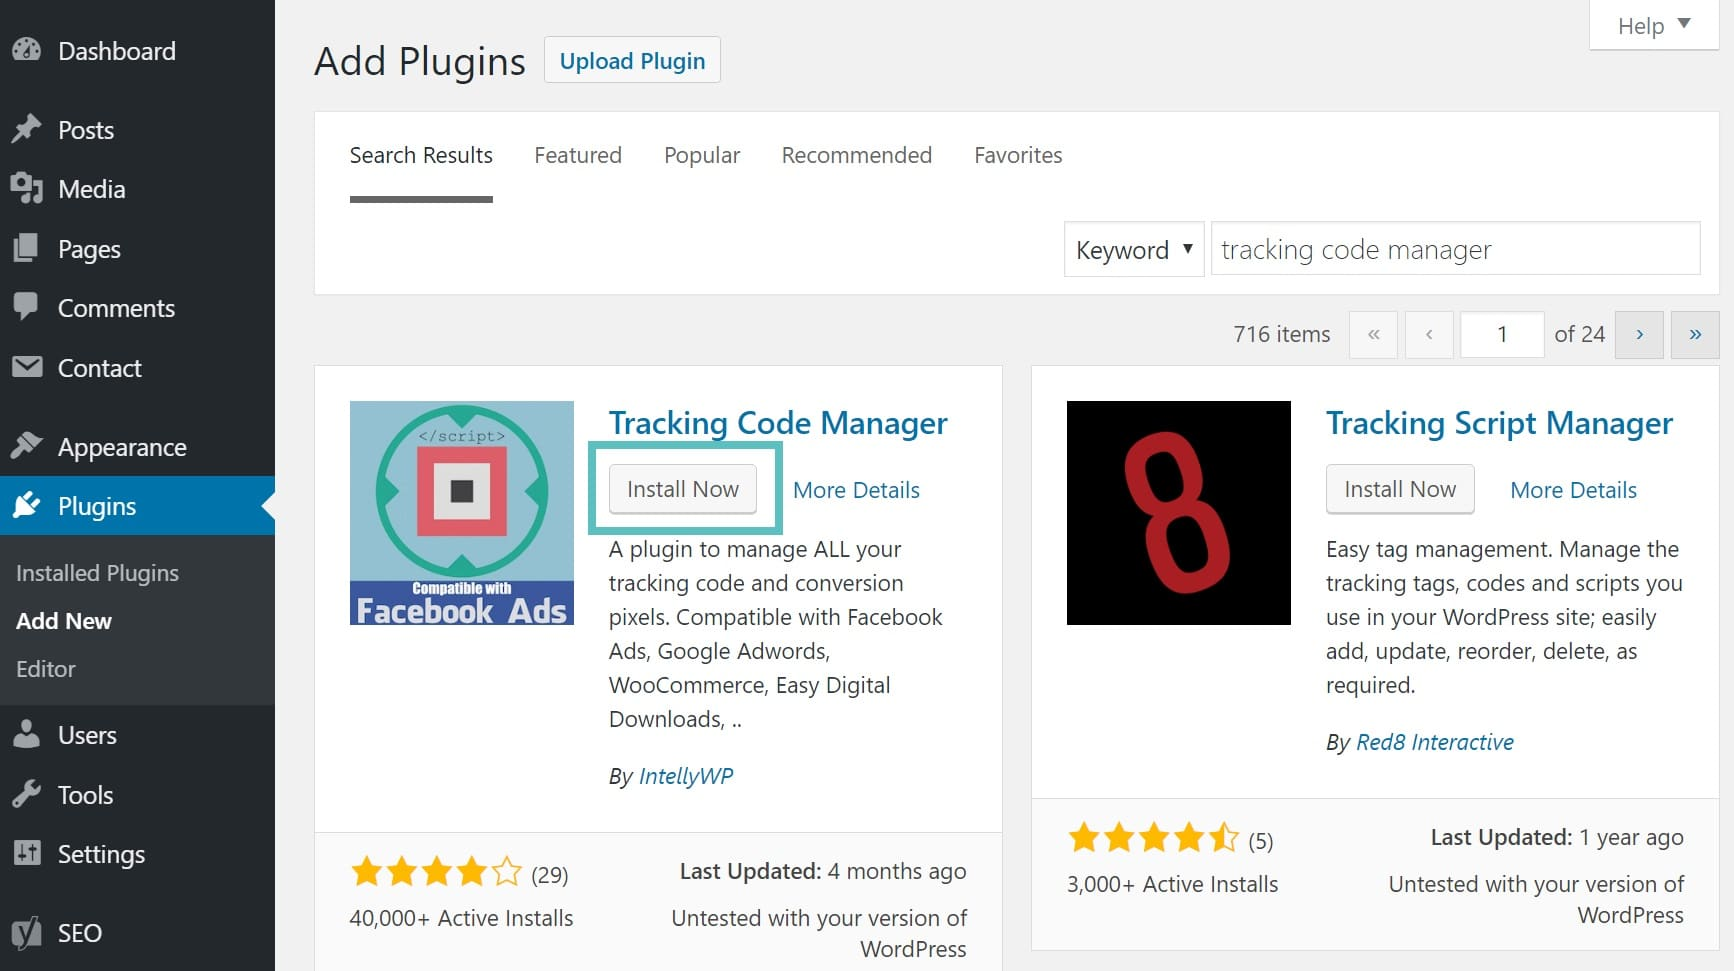 Installazione del plugin Tracking Code Manager di WordPress